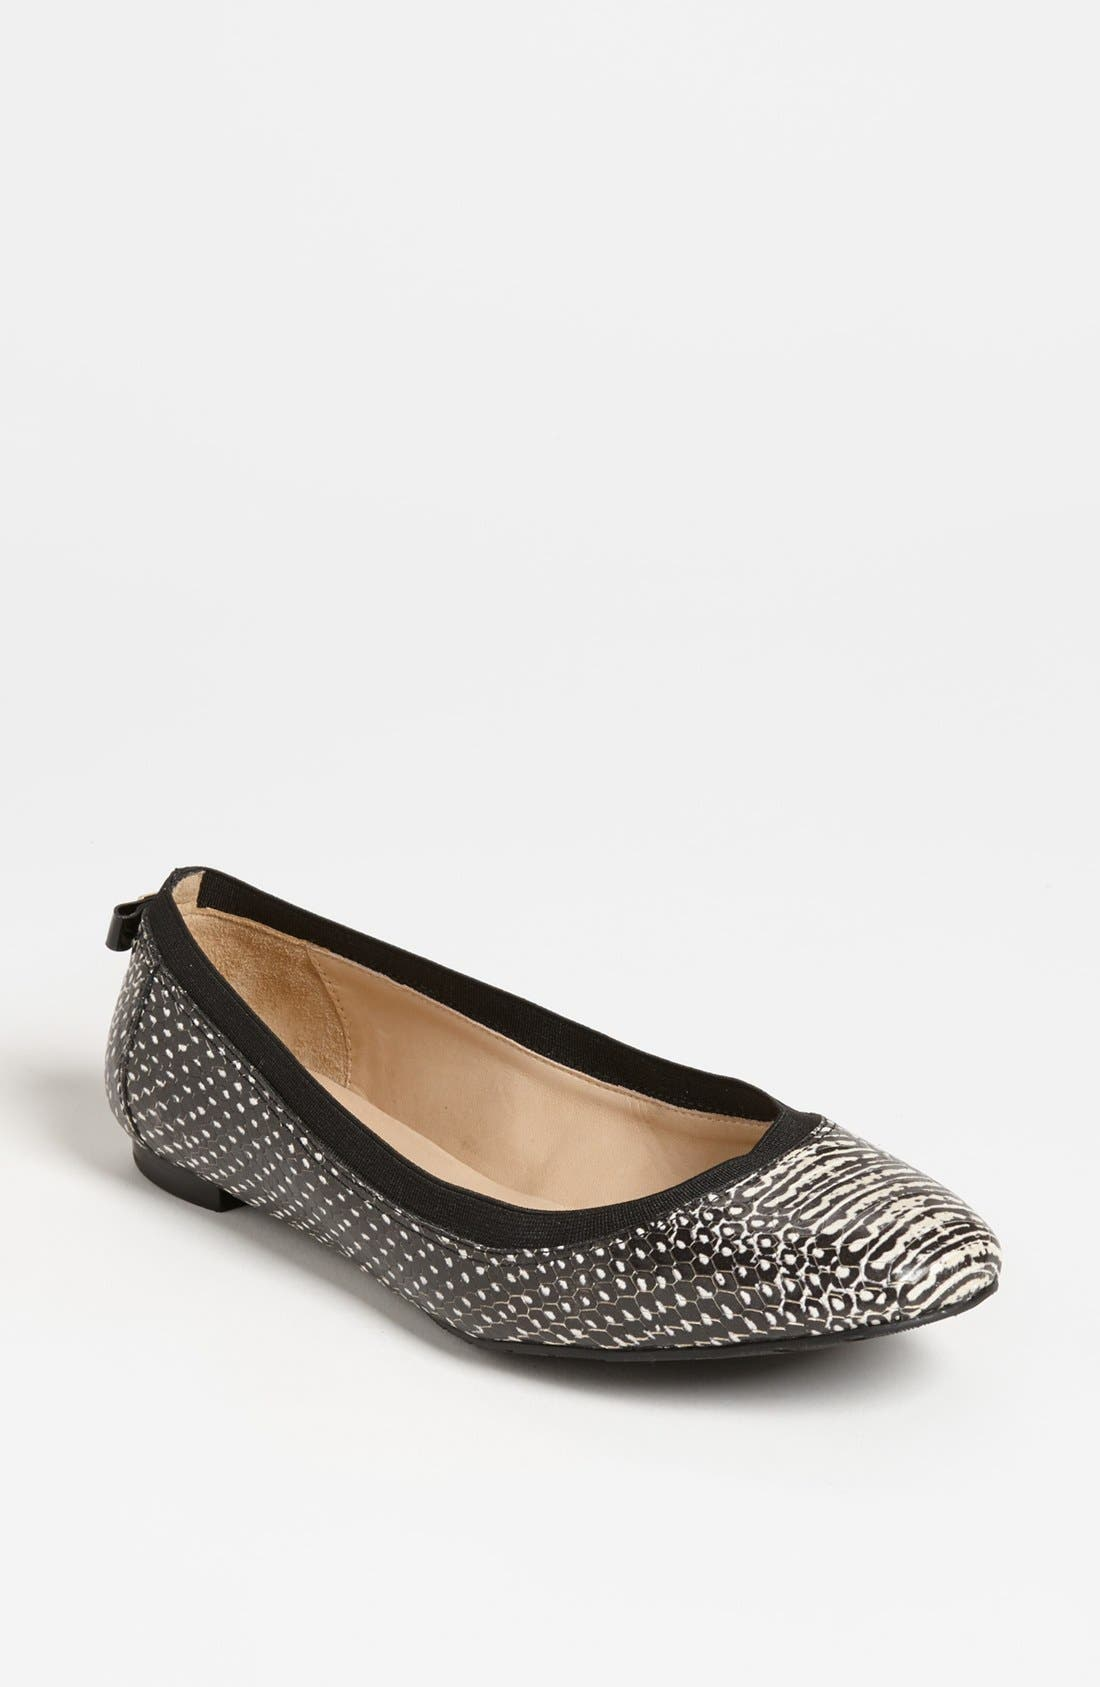 Main Image - kate spade new york 'taffy' flat